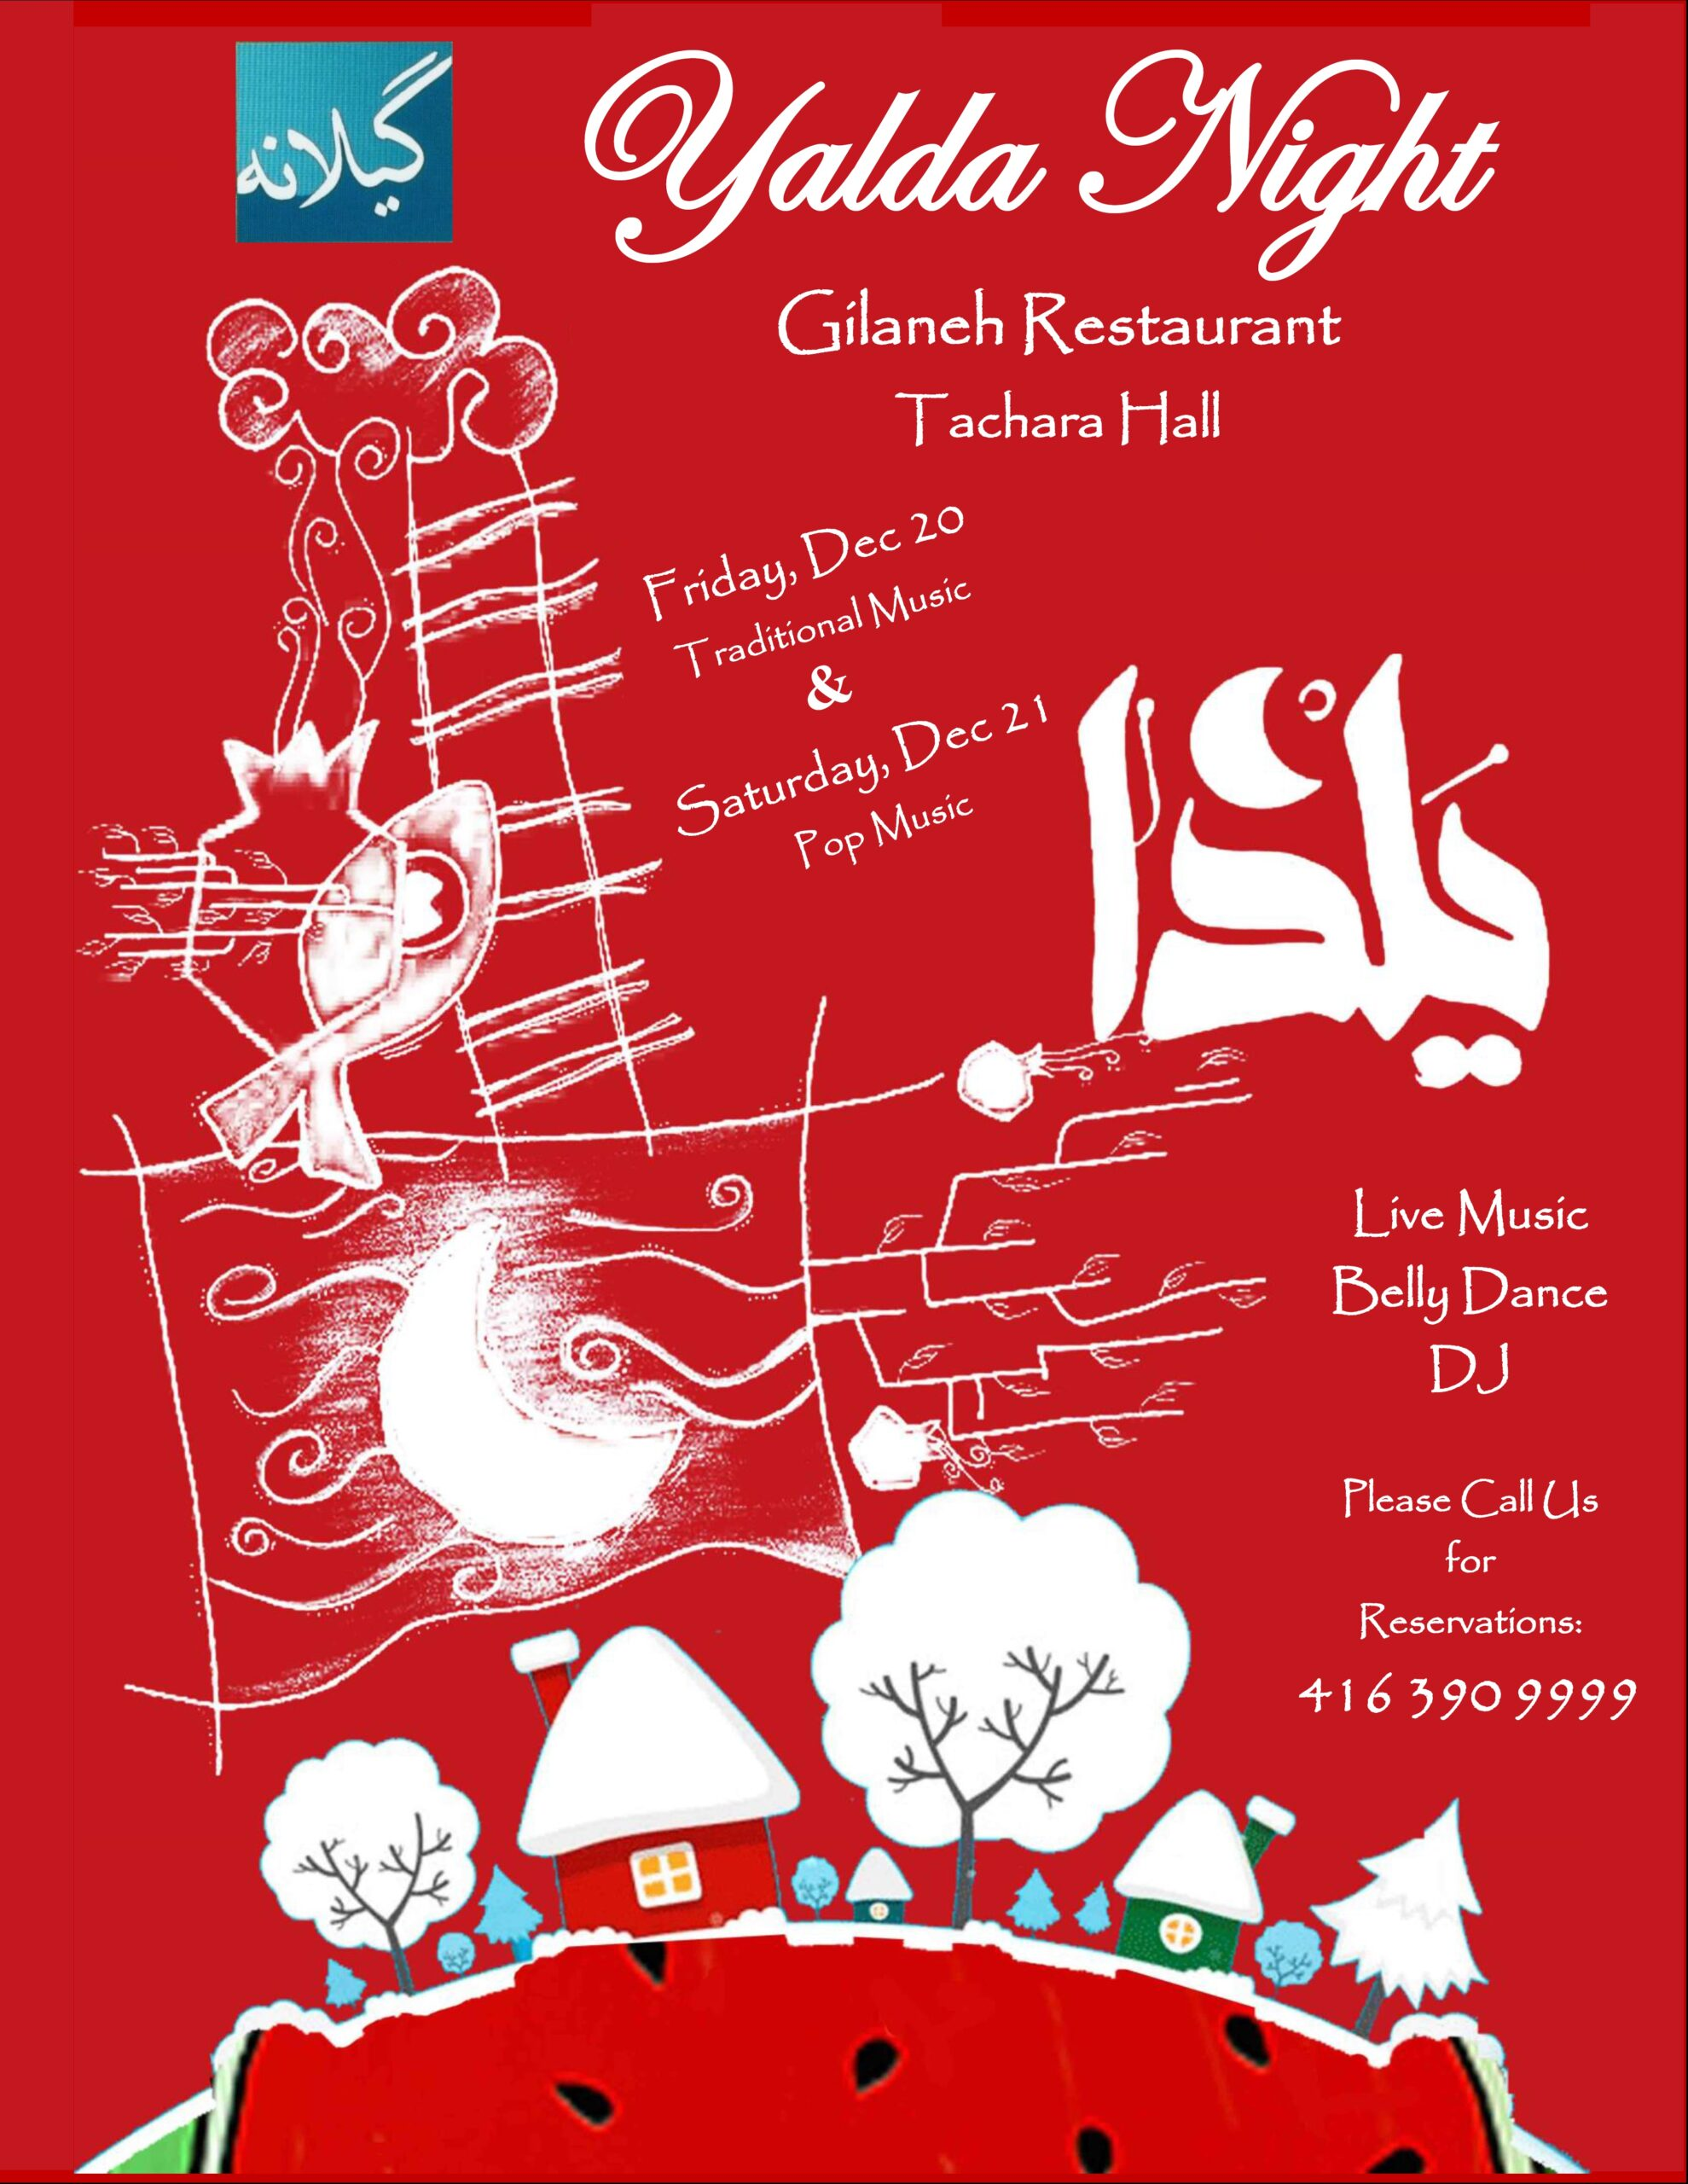 Gilaneh Restaurant Dec 20 and Dec 21,2019